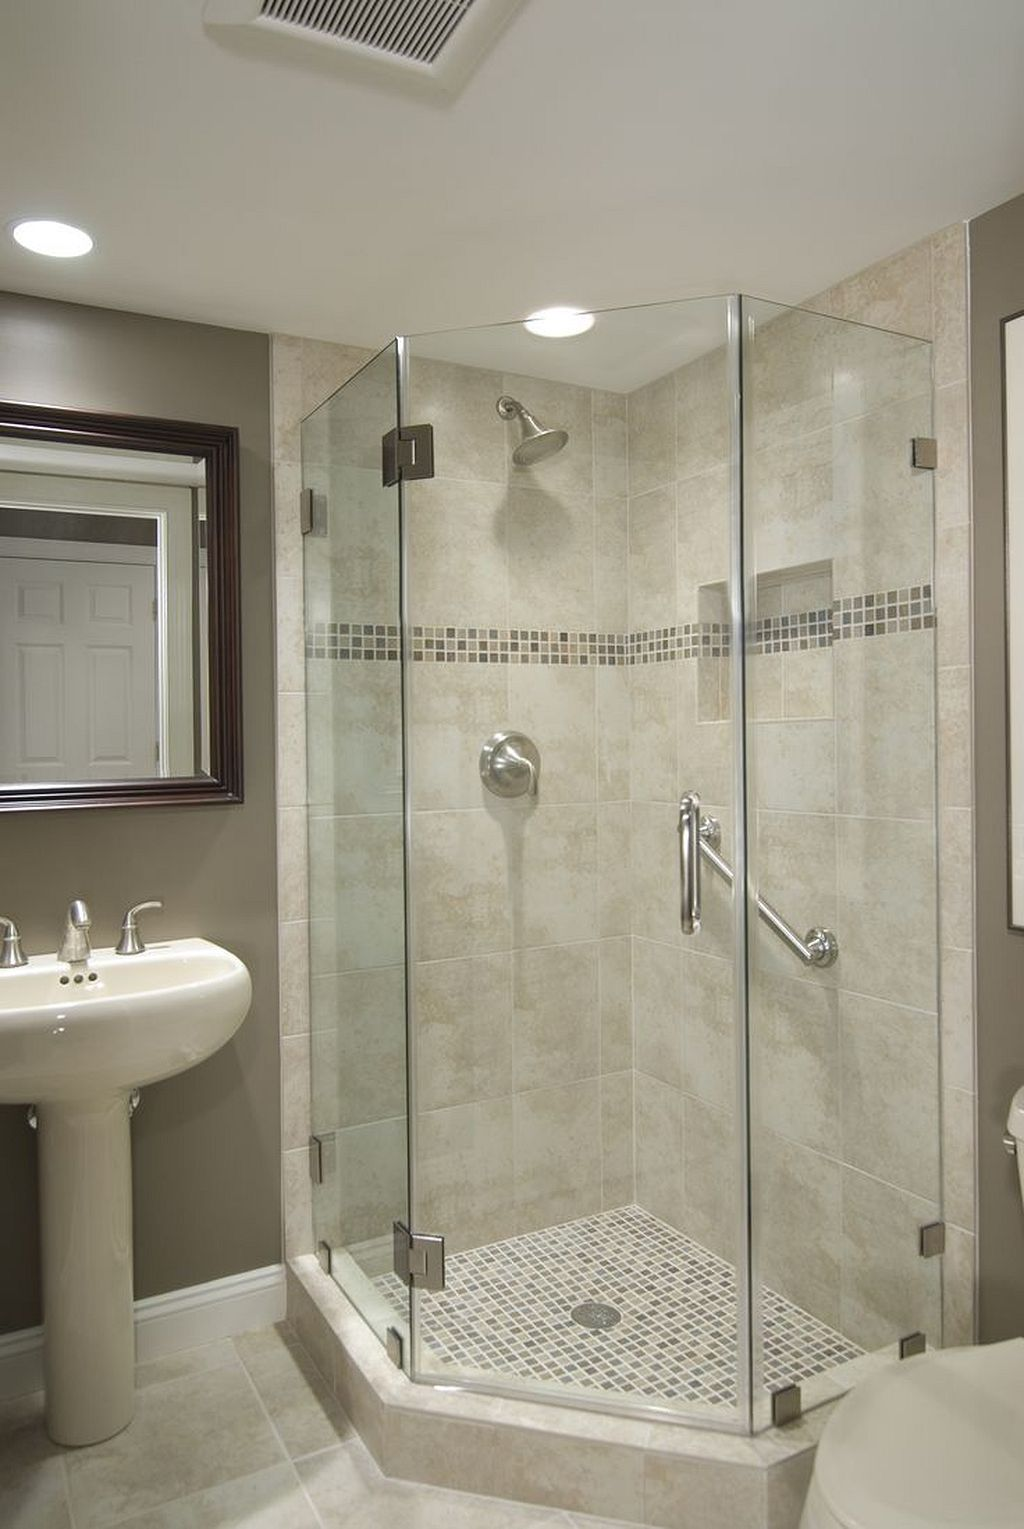 Pin by Garden Ideas on Others | Bathroom layout, Shower ...